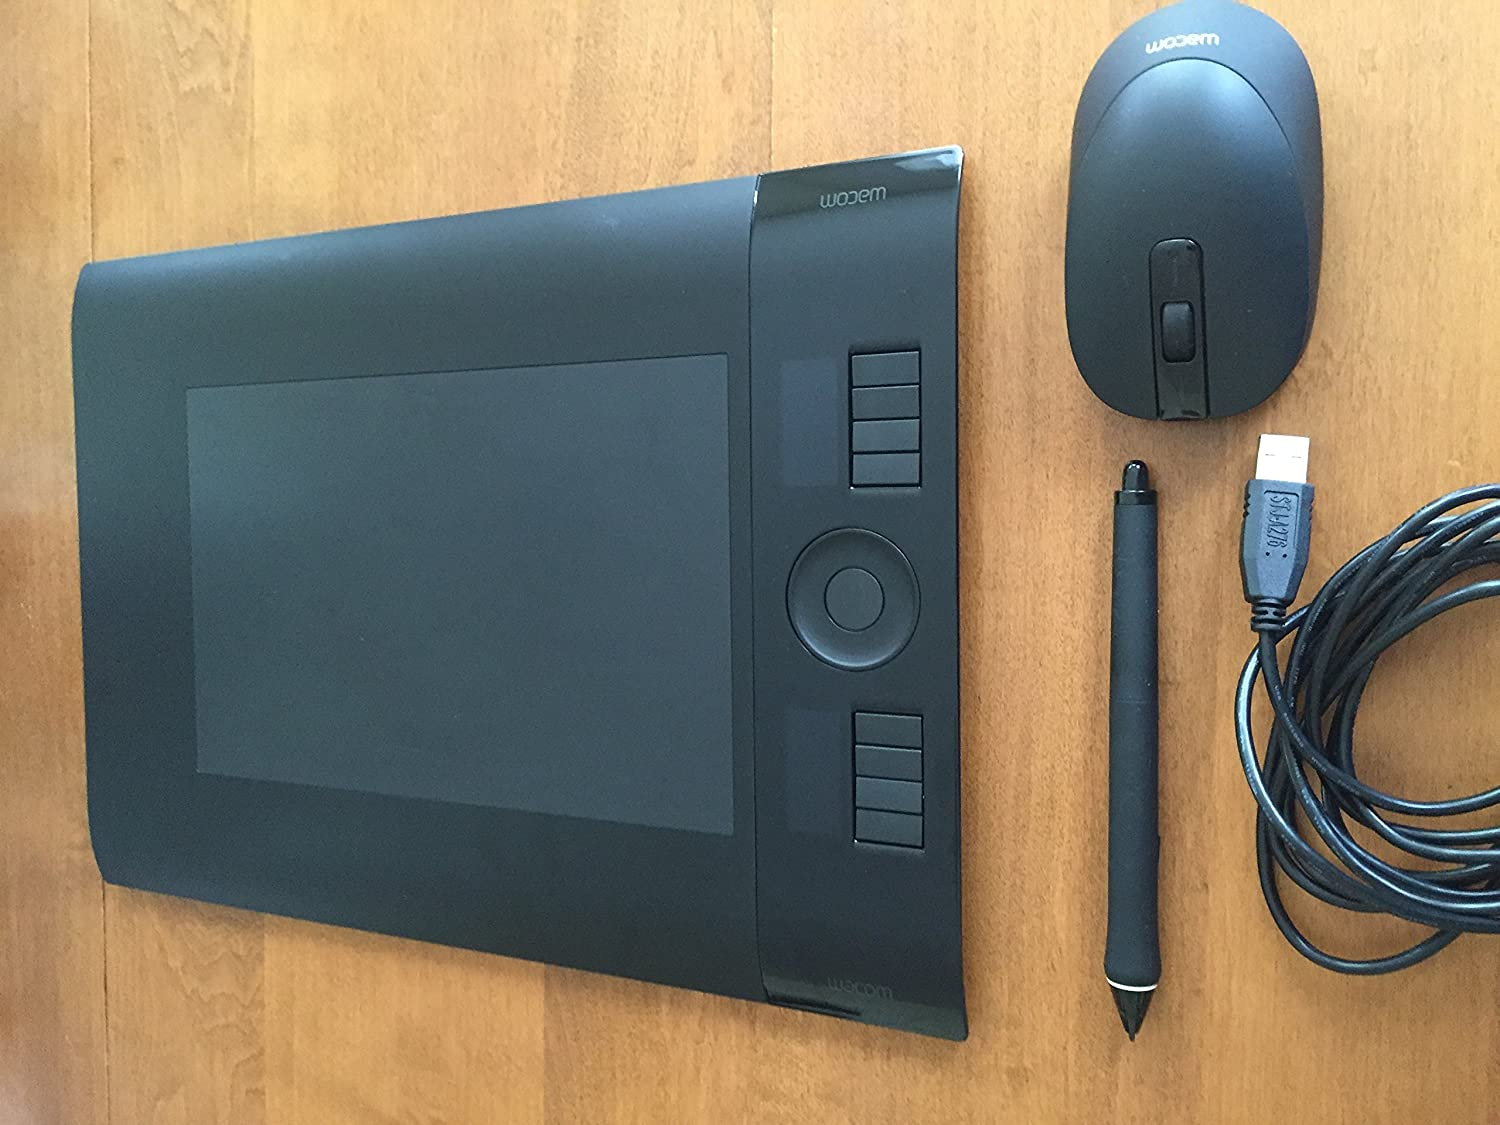 Wacom Intuos 4 INTUOS4 Cintiq21 replacement grip pen tested works good condition